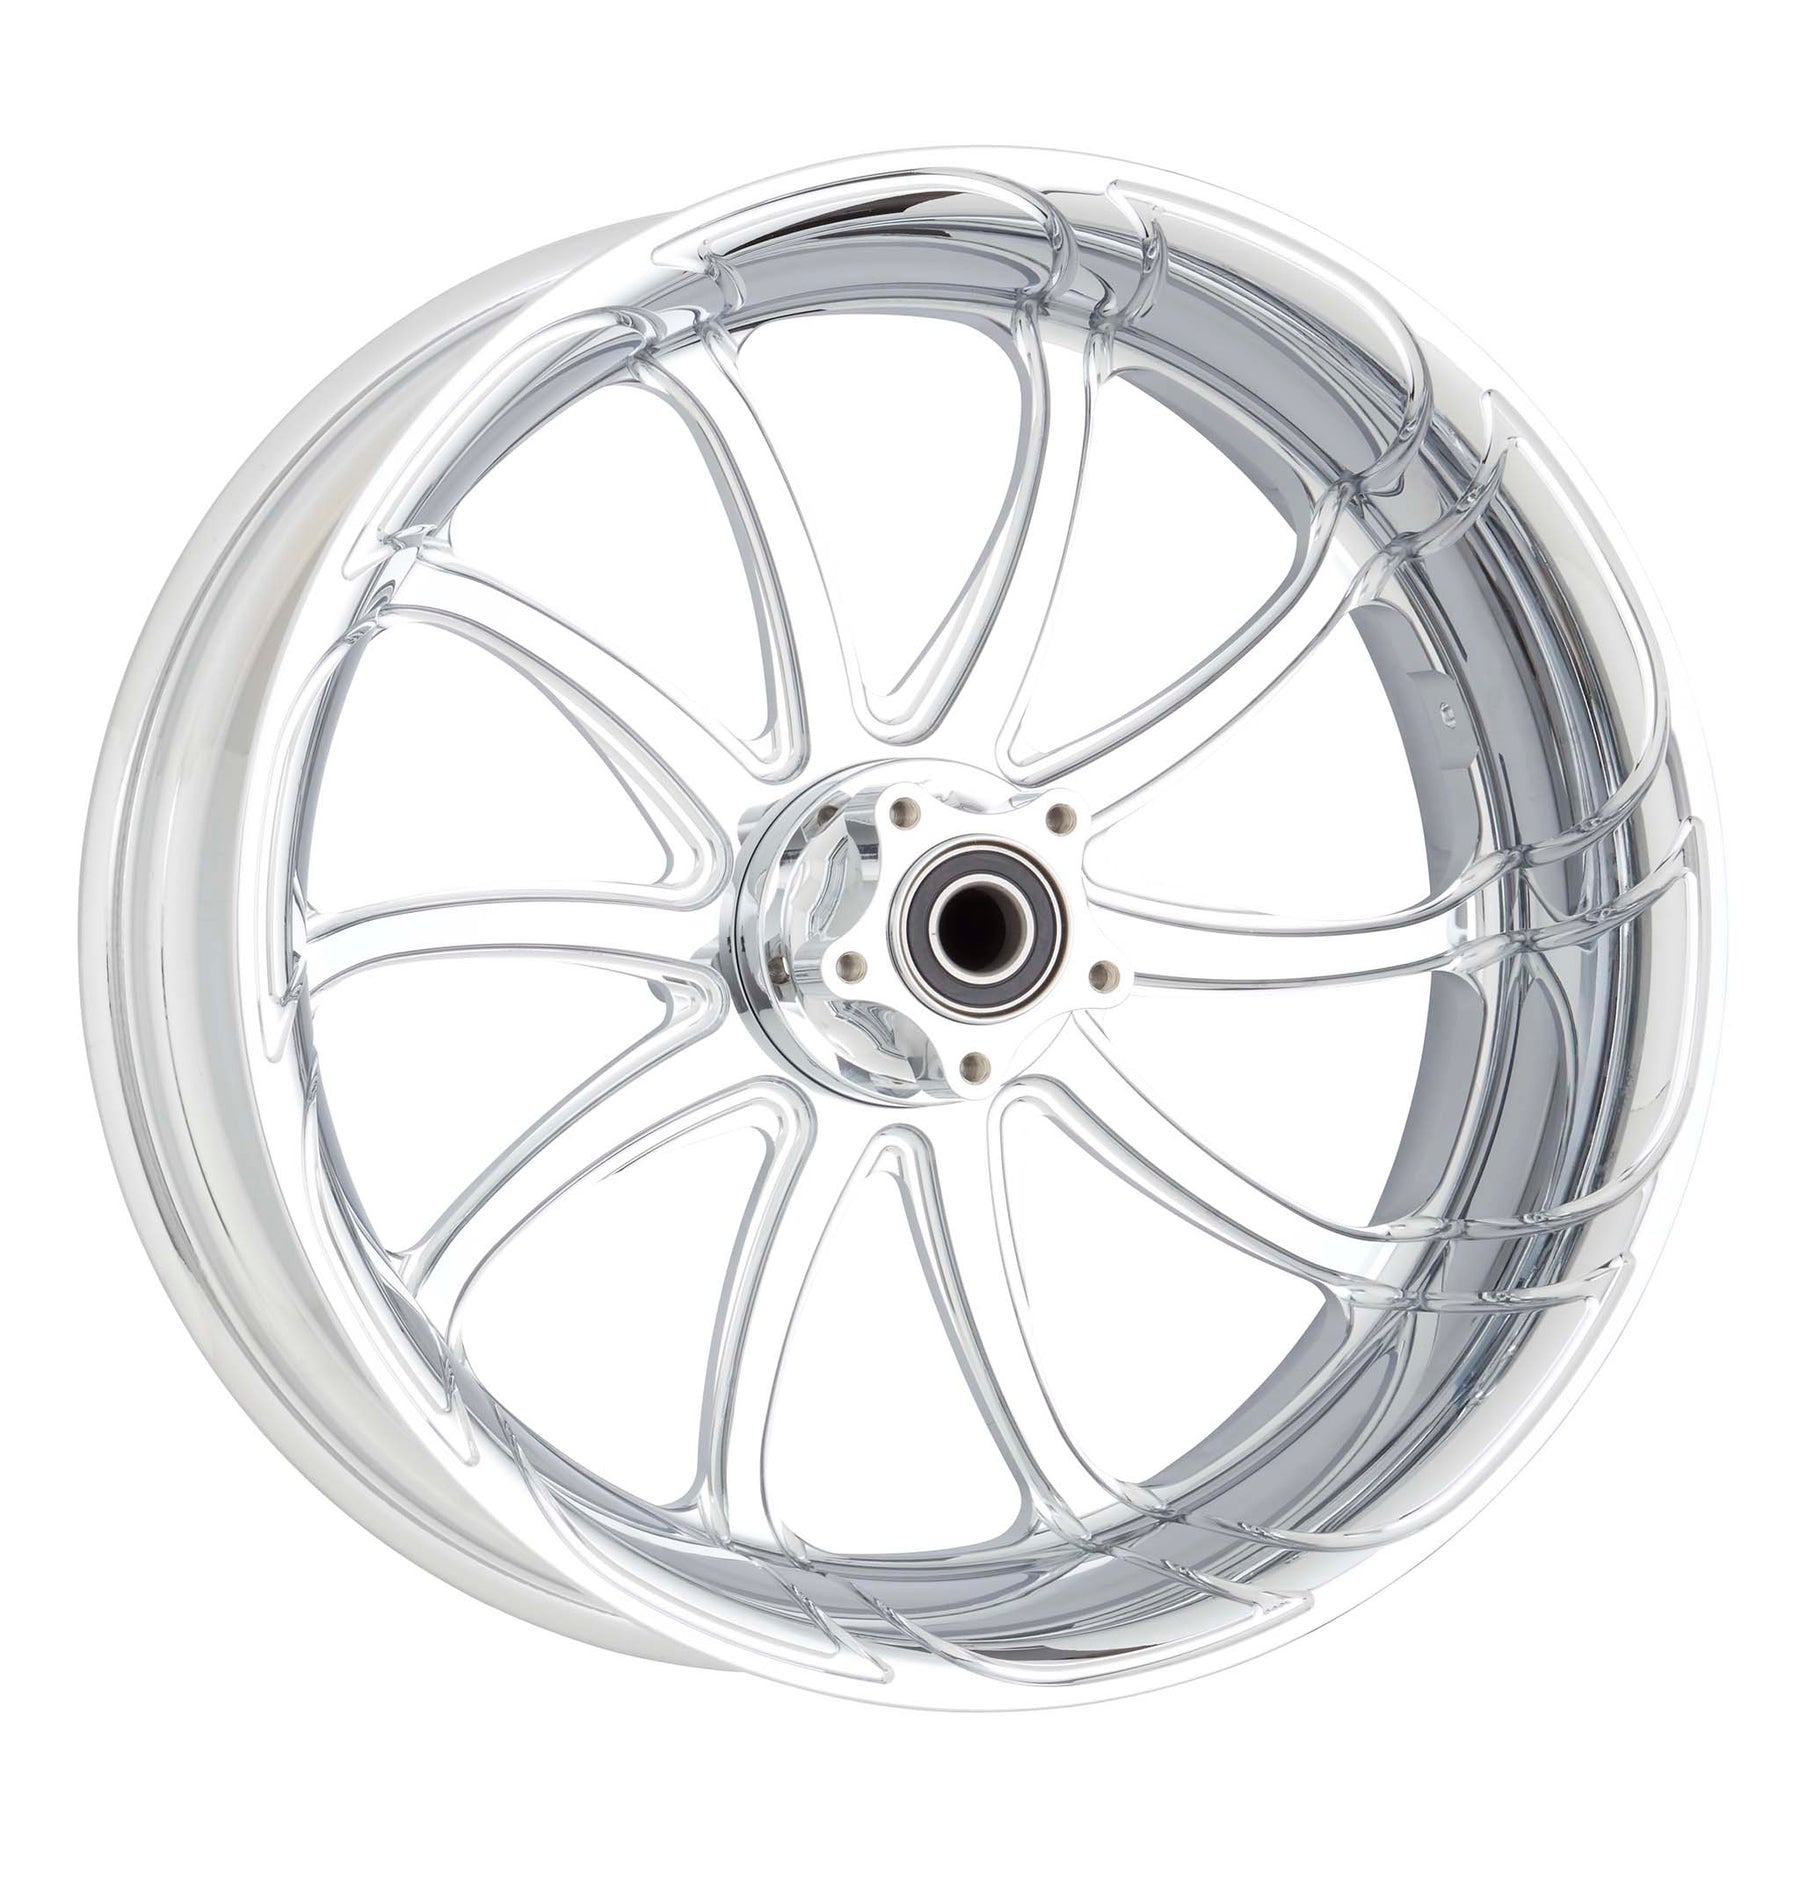 Drift Forged Wheels for Indian®, Chrome